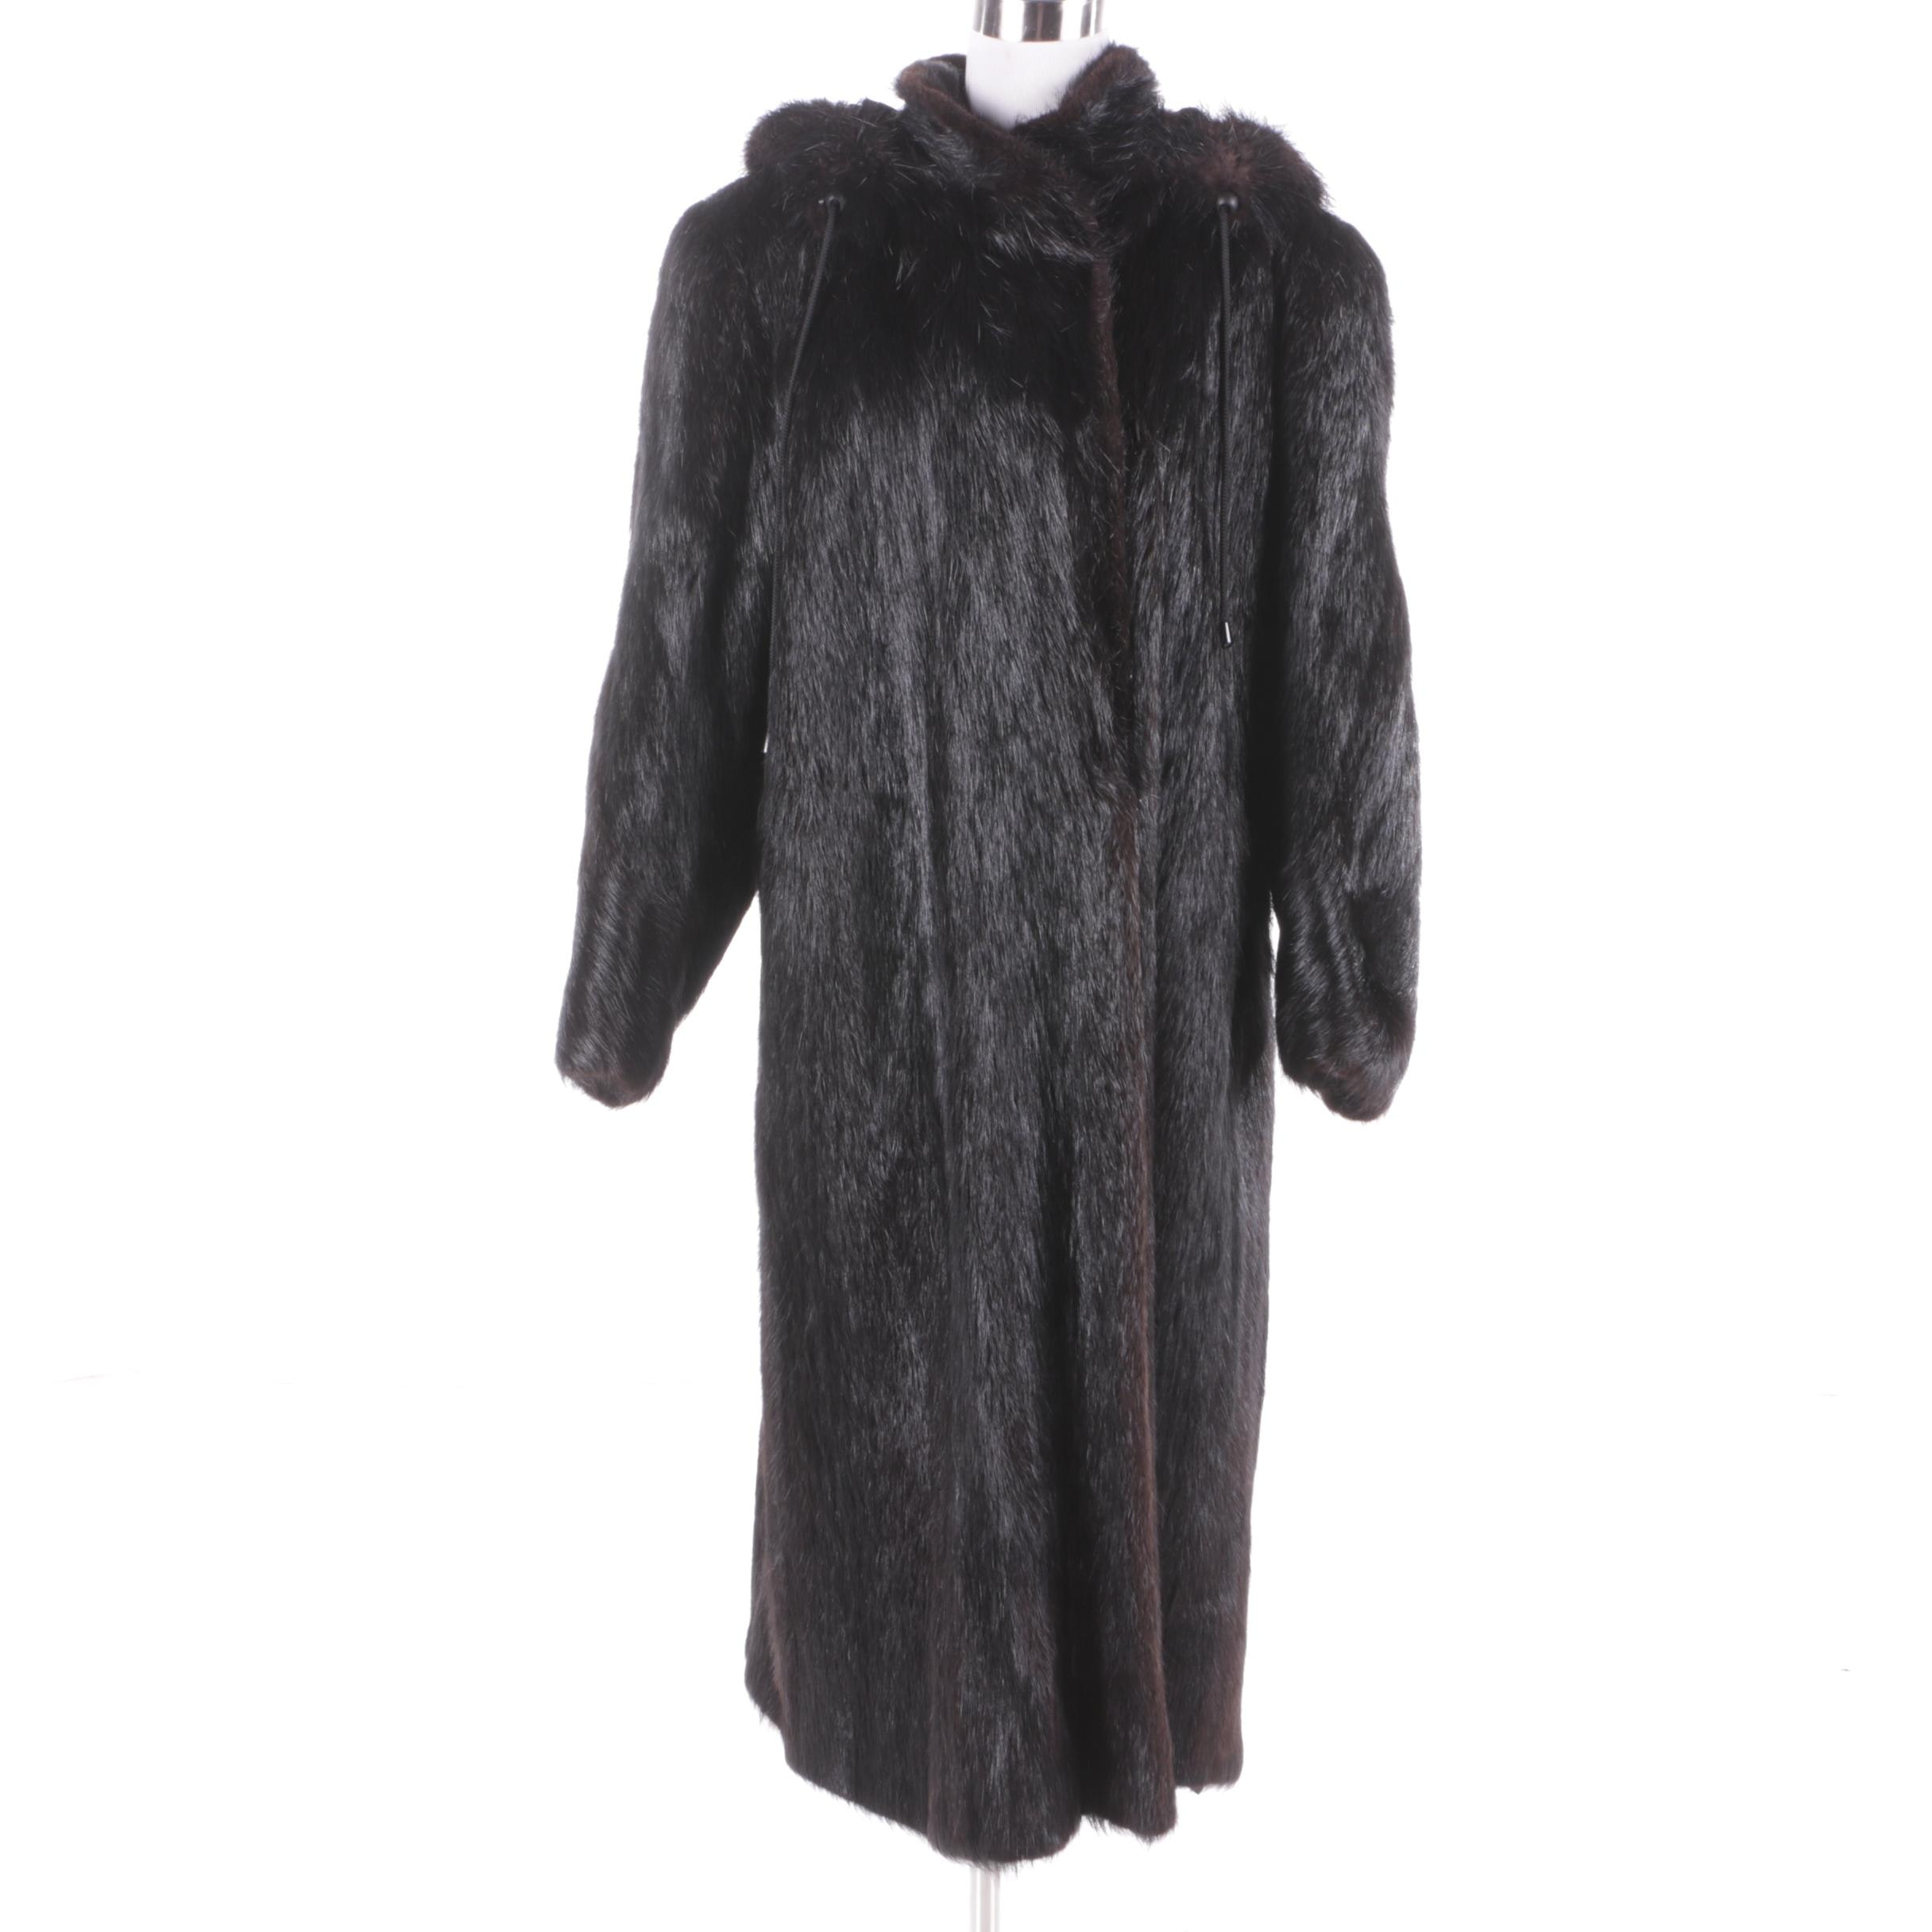 Women's Vintage Barth-Wind Dyed Nutria Fur Coat with Hood